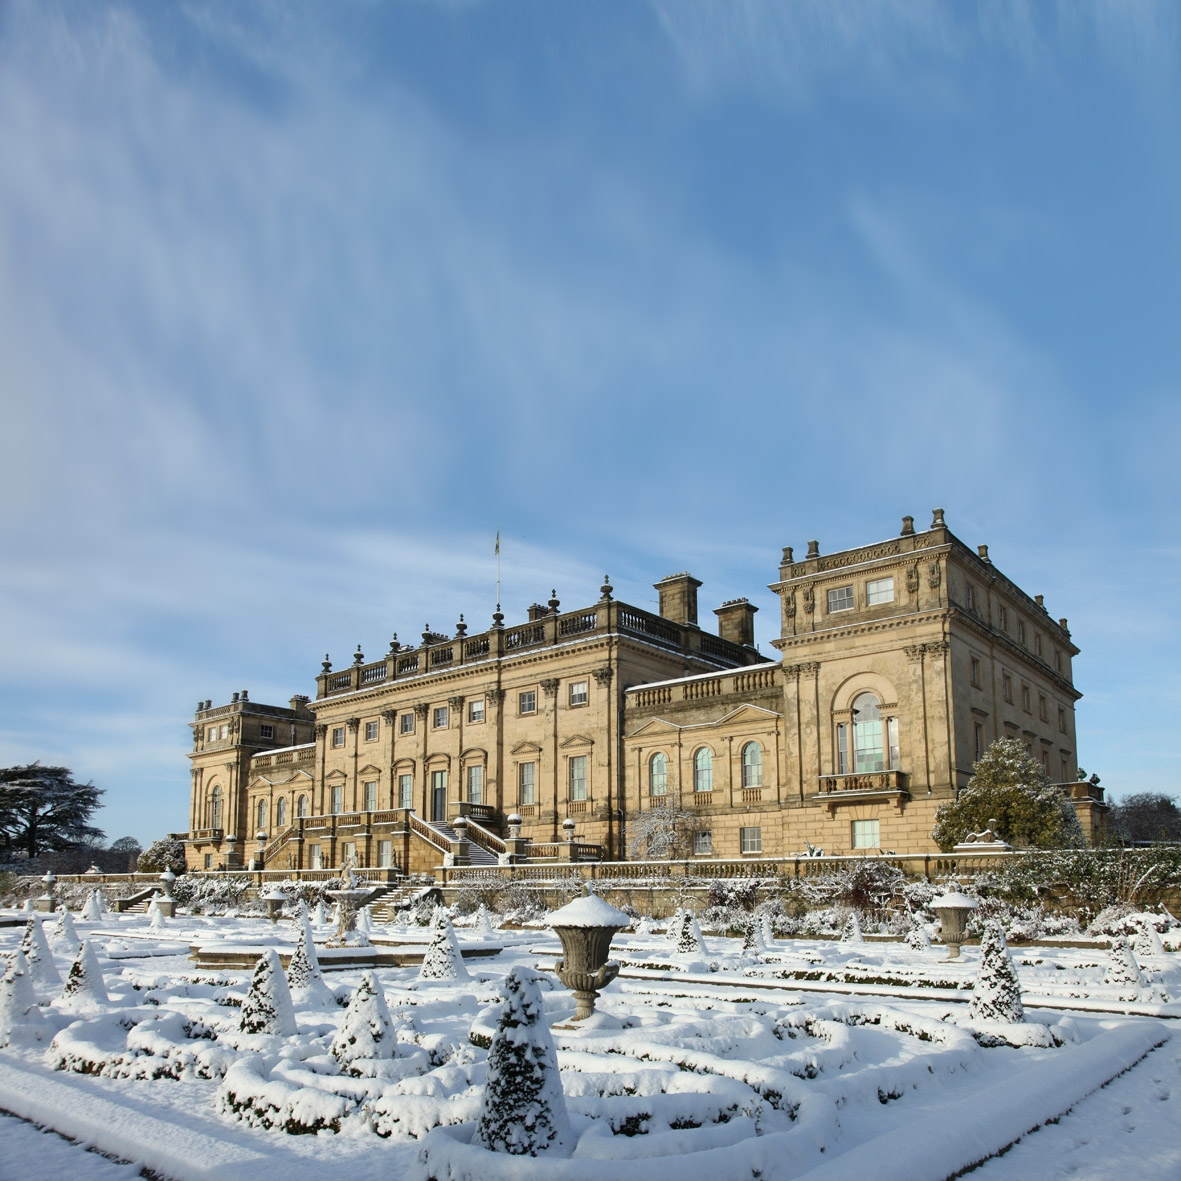 Harewood South Front with snow Parterre 5 credit Anthony Hicks